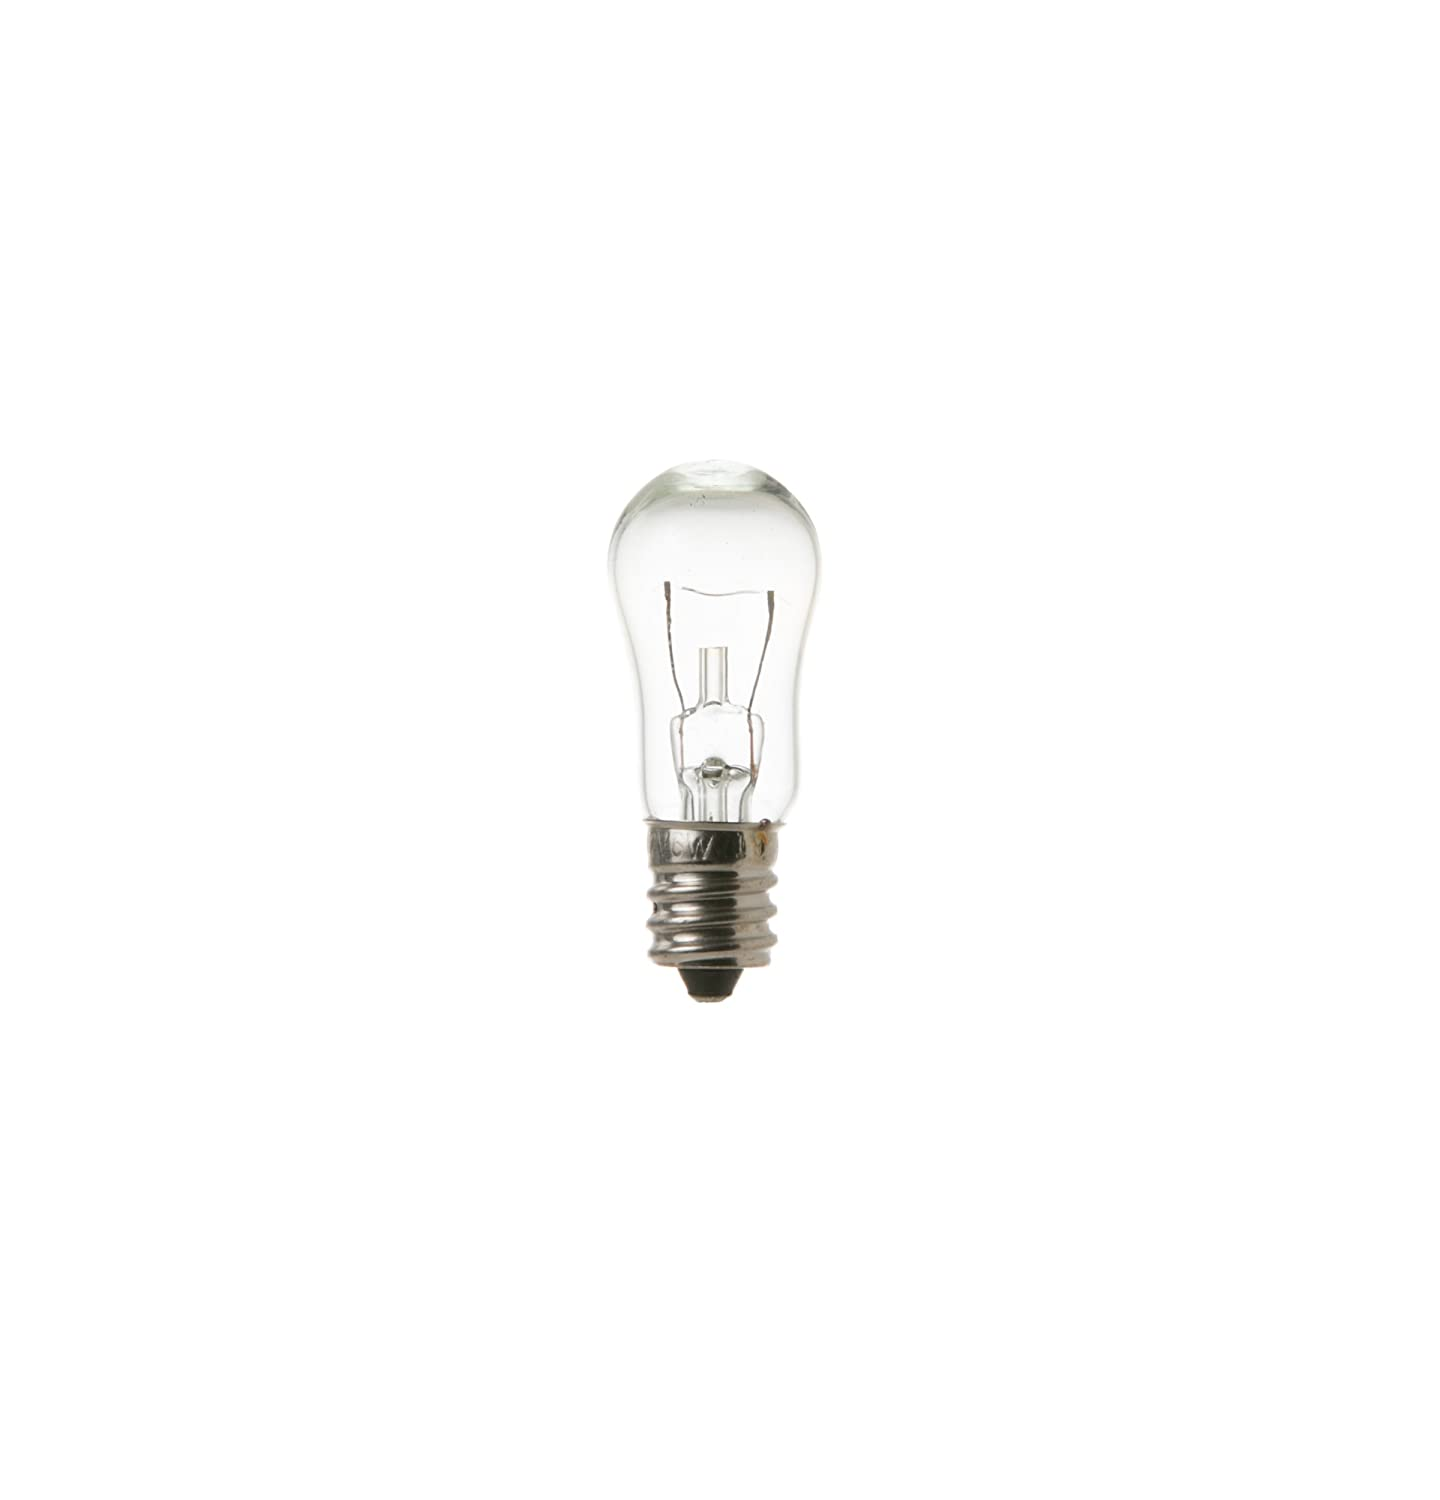 General Electric WR02X12208 Dispenser Light Bulb for Refrigerator